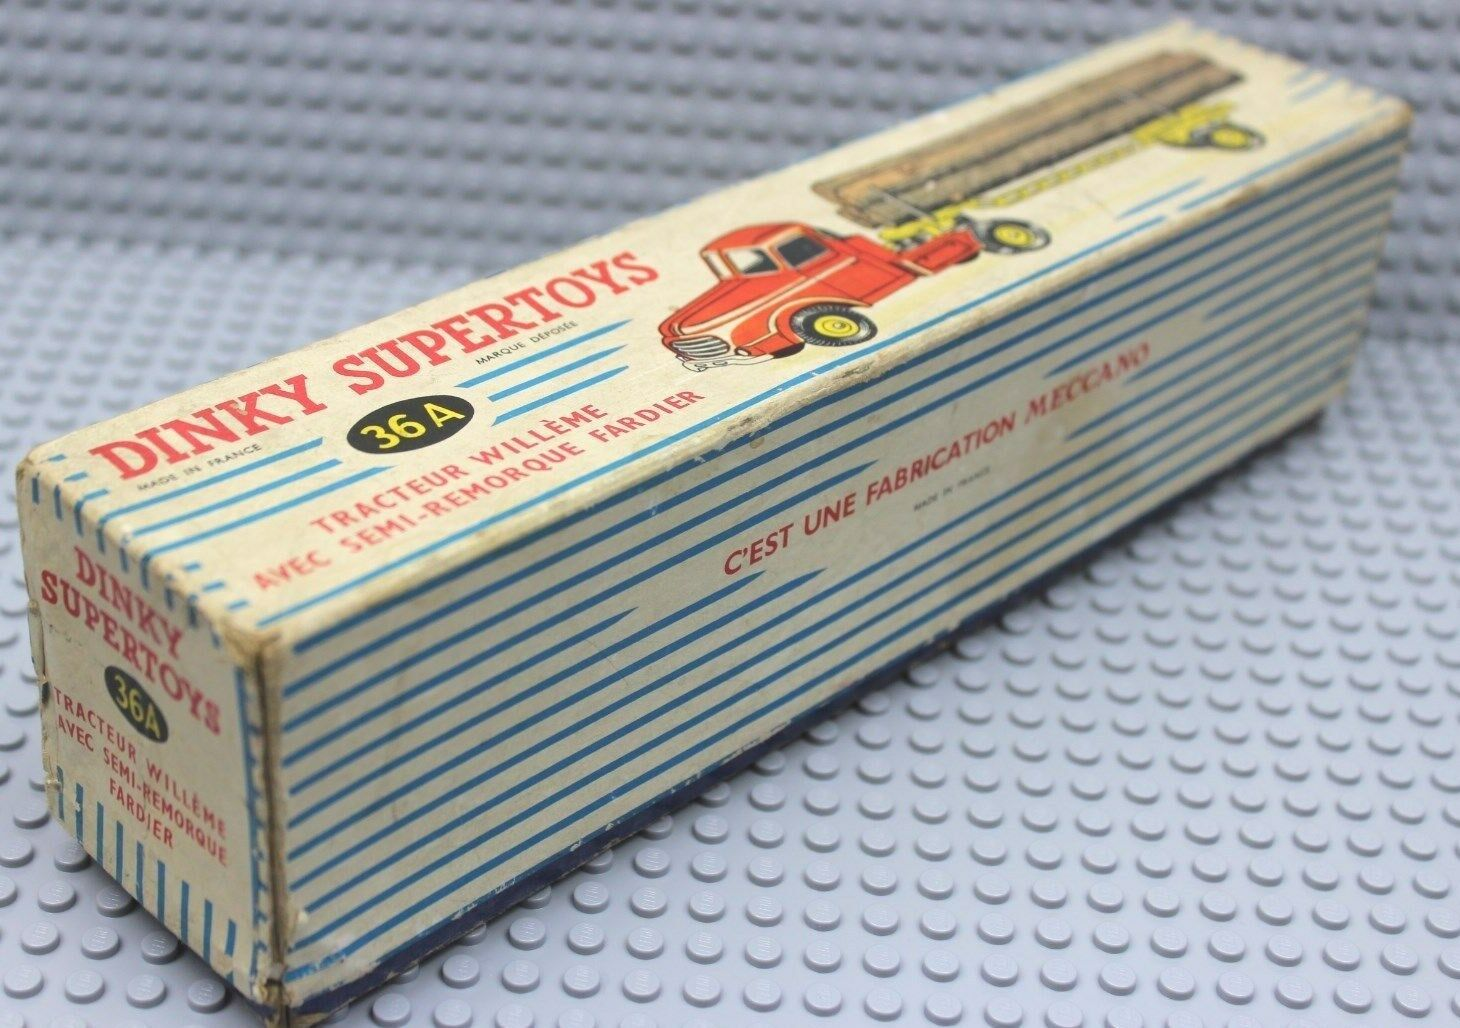 Dinky Toys ® 36 a Tracteur Willeme avec OVP Box 50 60er